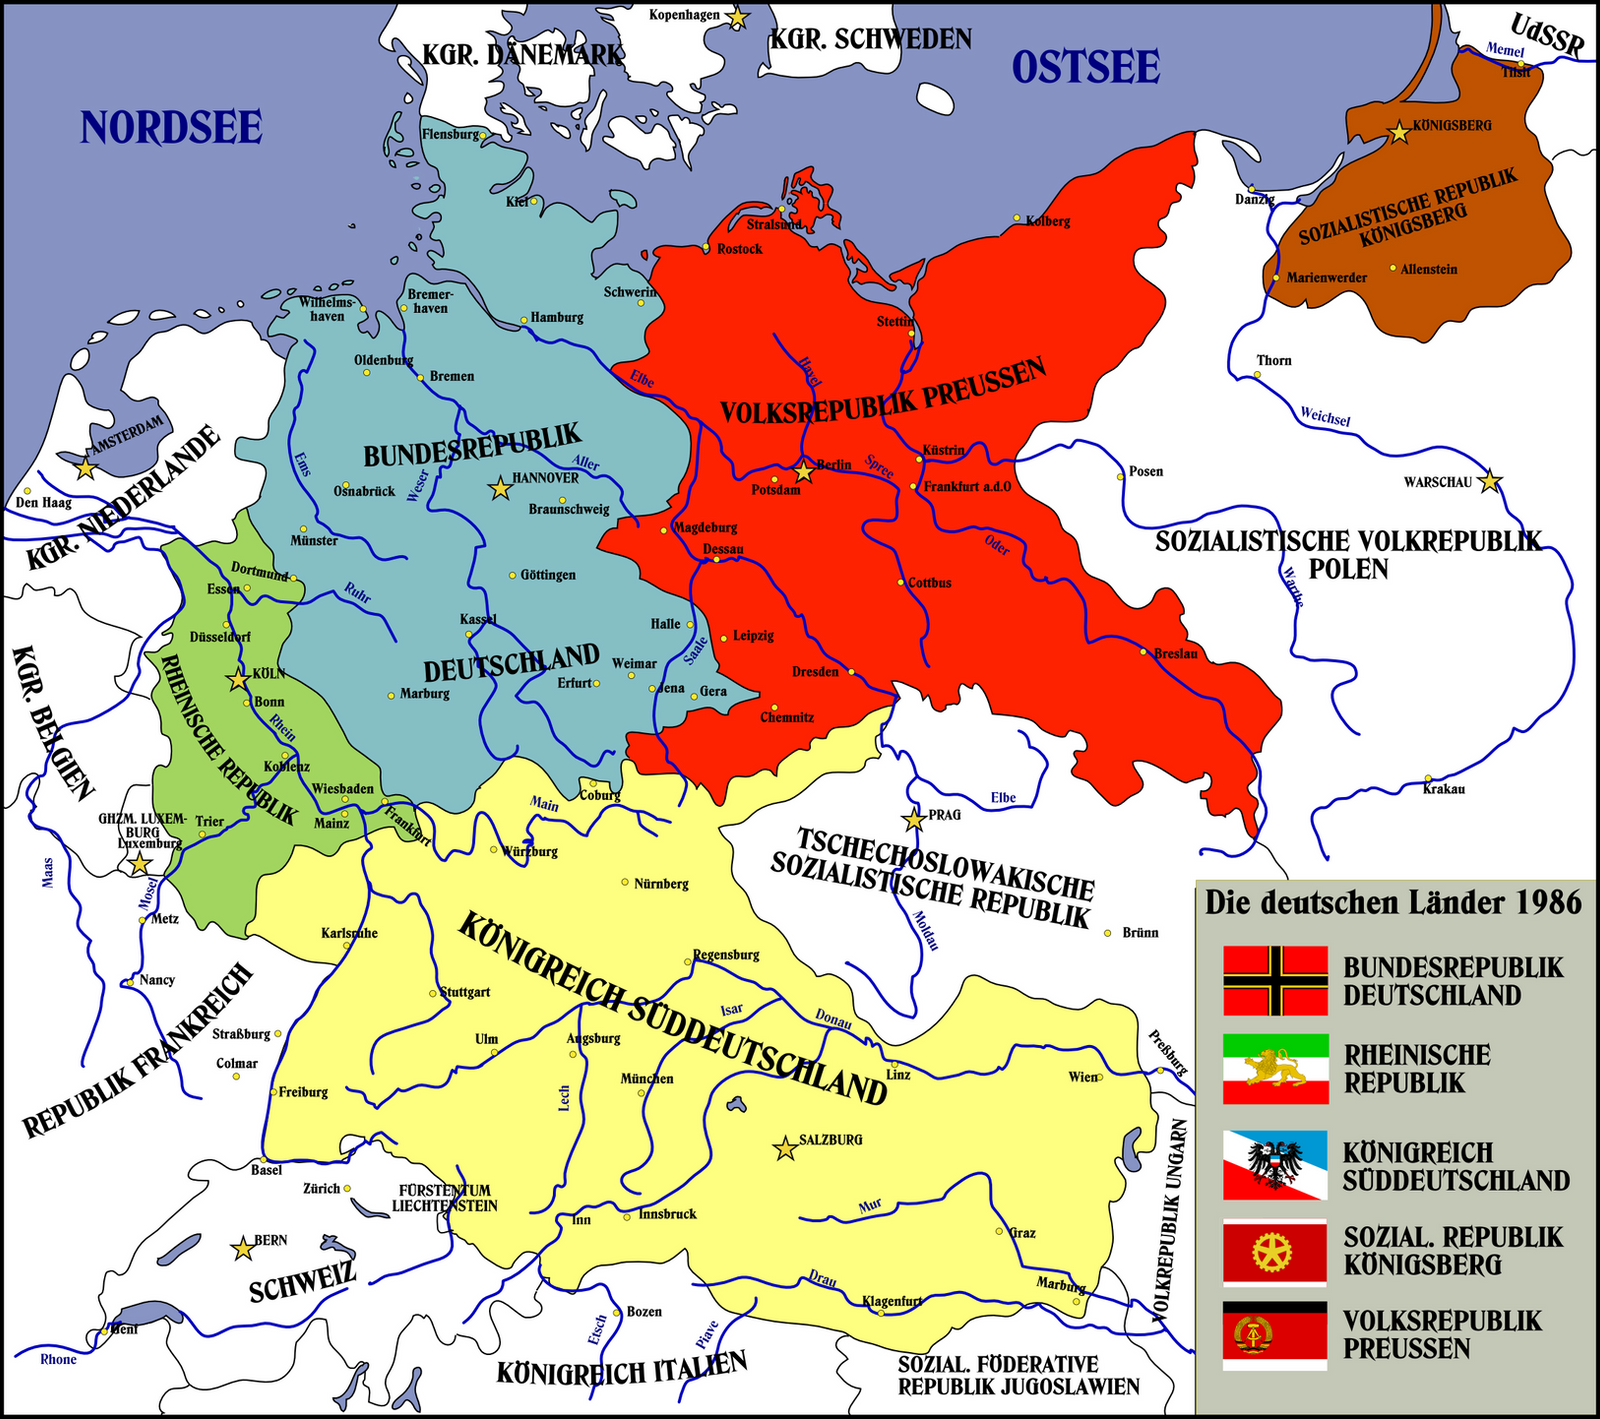 Pre Wwii Germany Map | Time Zones Map Germany Map Pre Ww on germany end ww2, germany education ww2, germany refugees, germany map ww2, germany ladies, germany wags, germany after ww2, germany 1930s, germany before wwii, germany single women, germany women's soccer, germany electricity sources, life in germany before ww2, germany hd, germany land, germany x russia, germany during ww2, germany beach, germany after ww1,